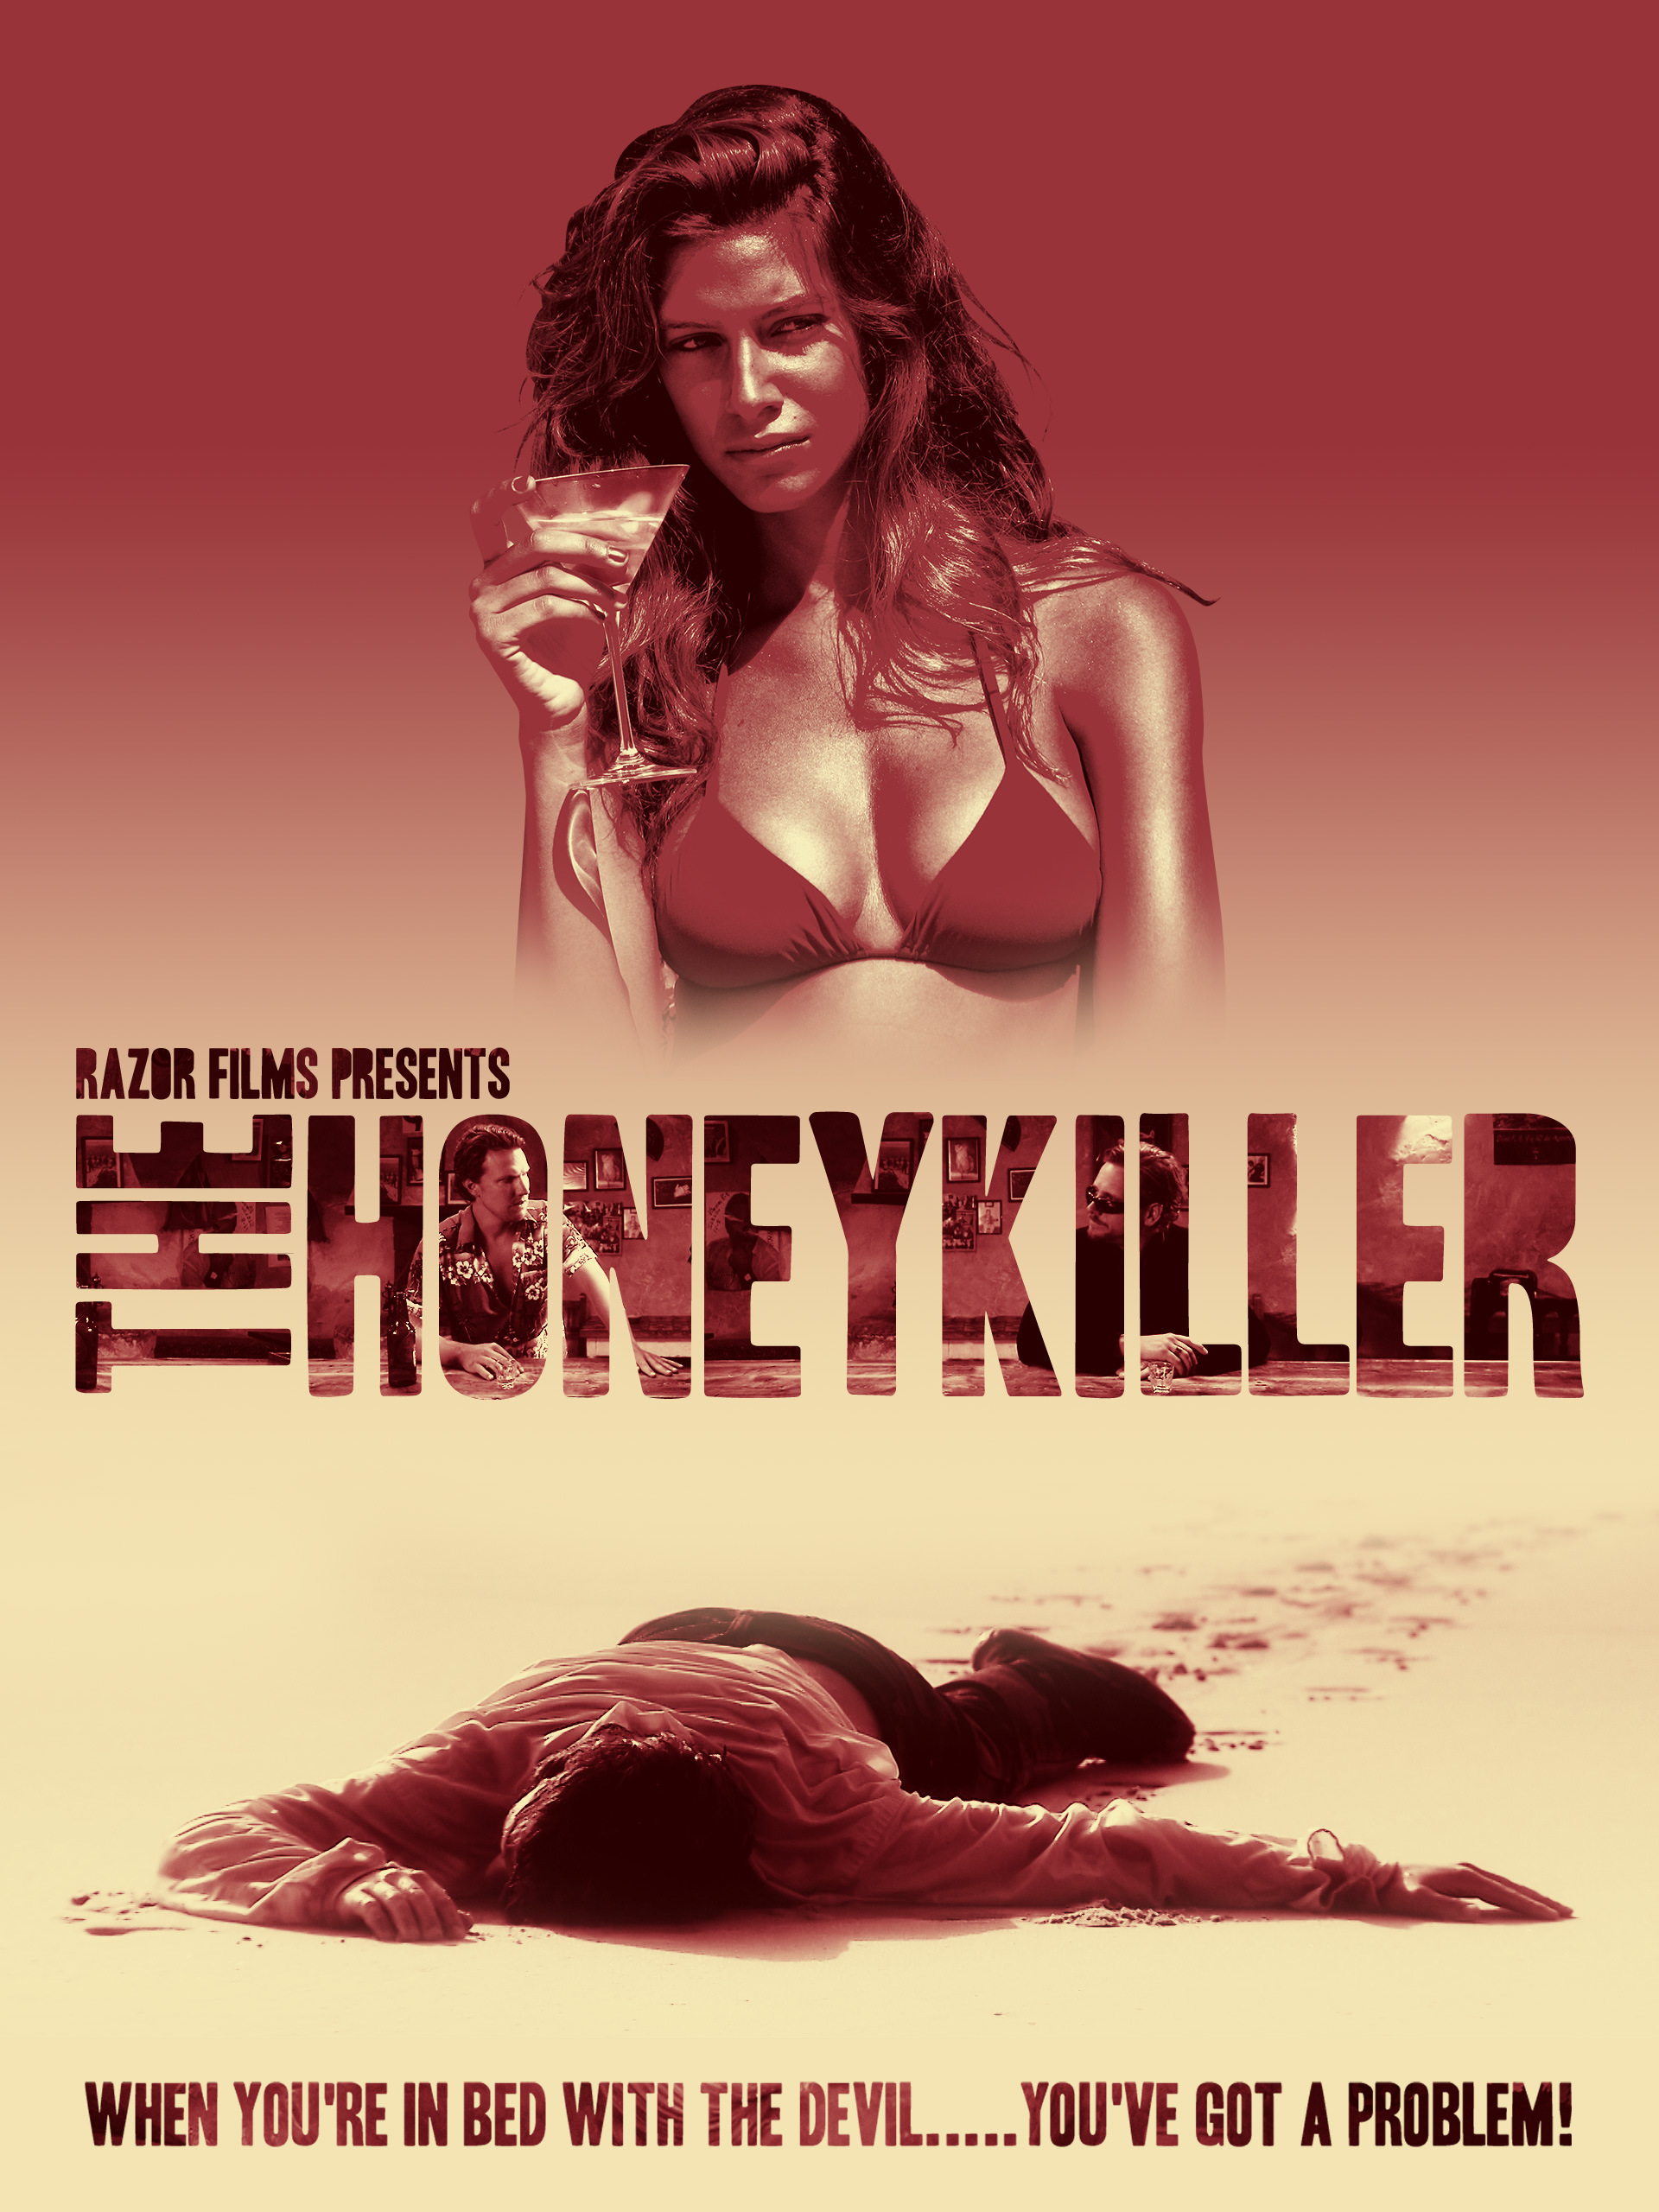 THE HONEY KILLER FINAL APPROVED POSTER MASTER OF 1200X1600 CREATION 15.3.2018